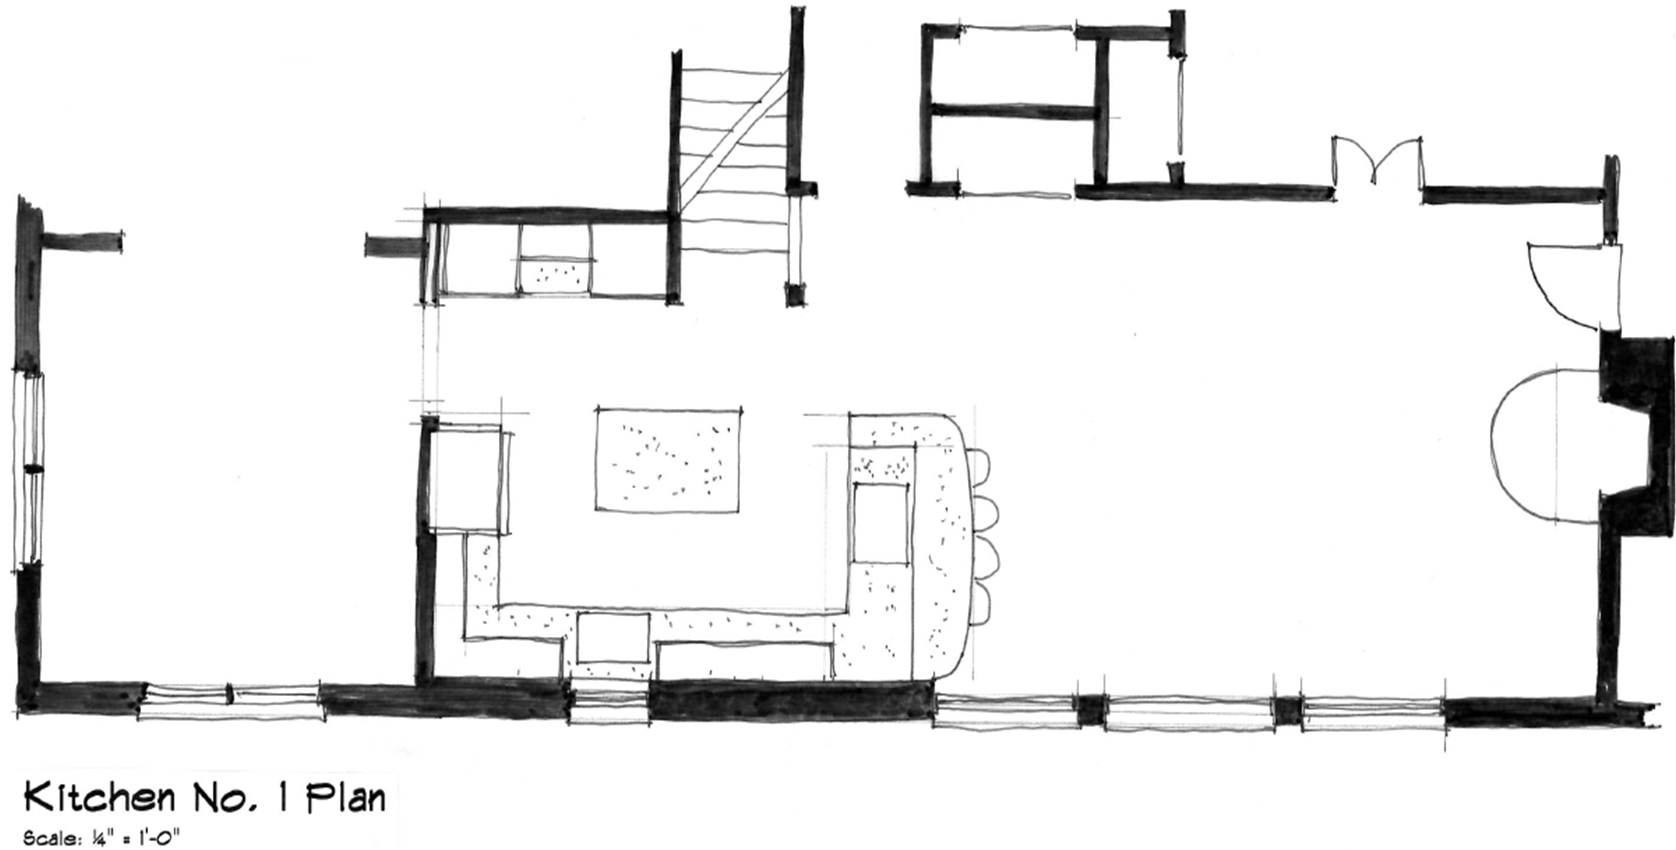 Kitchen No. 1 Plan